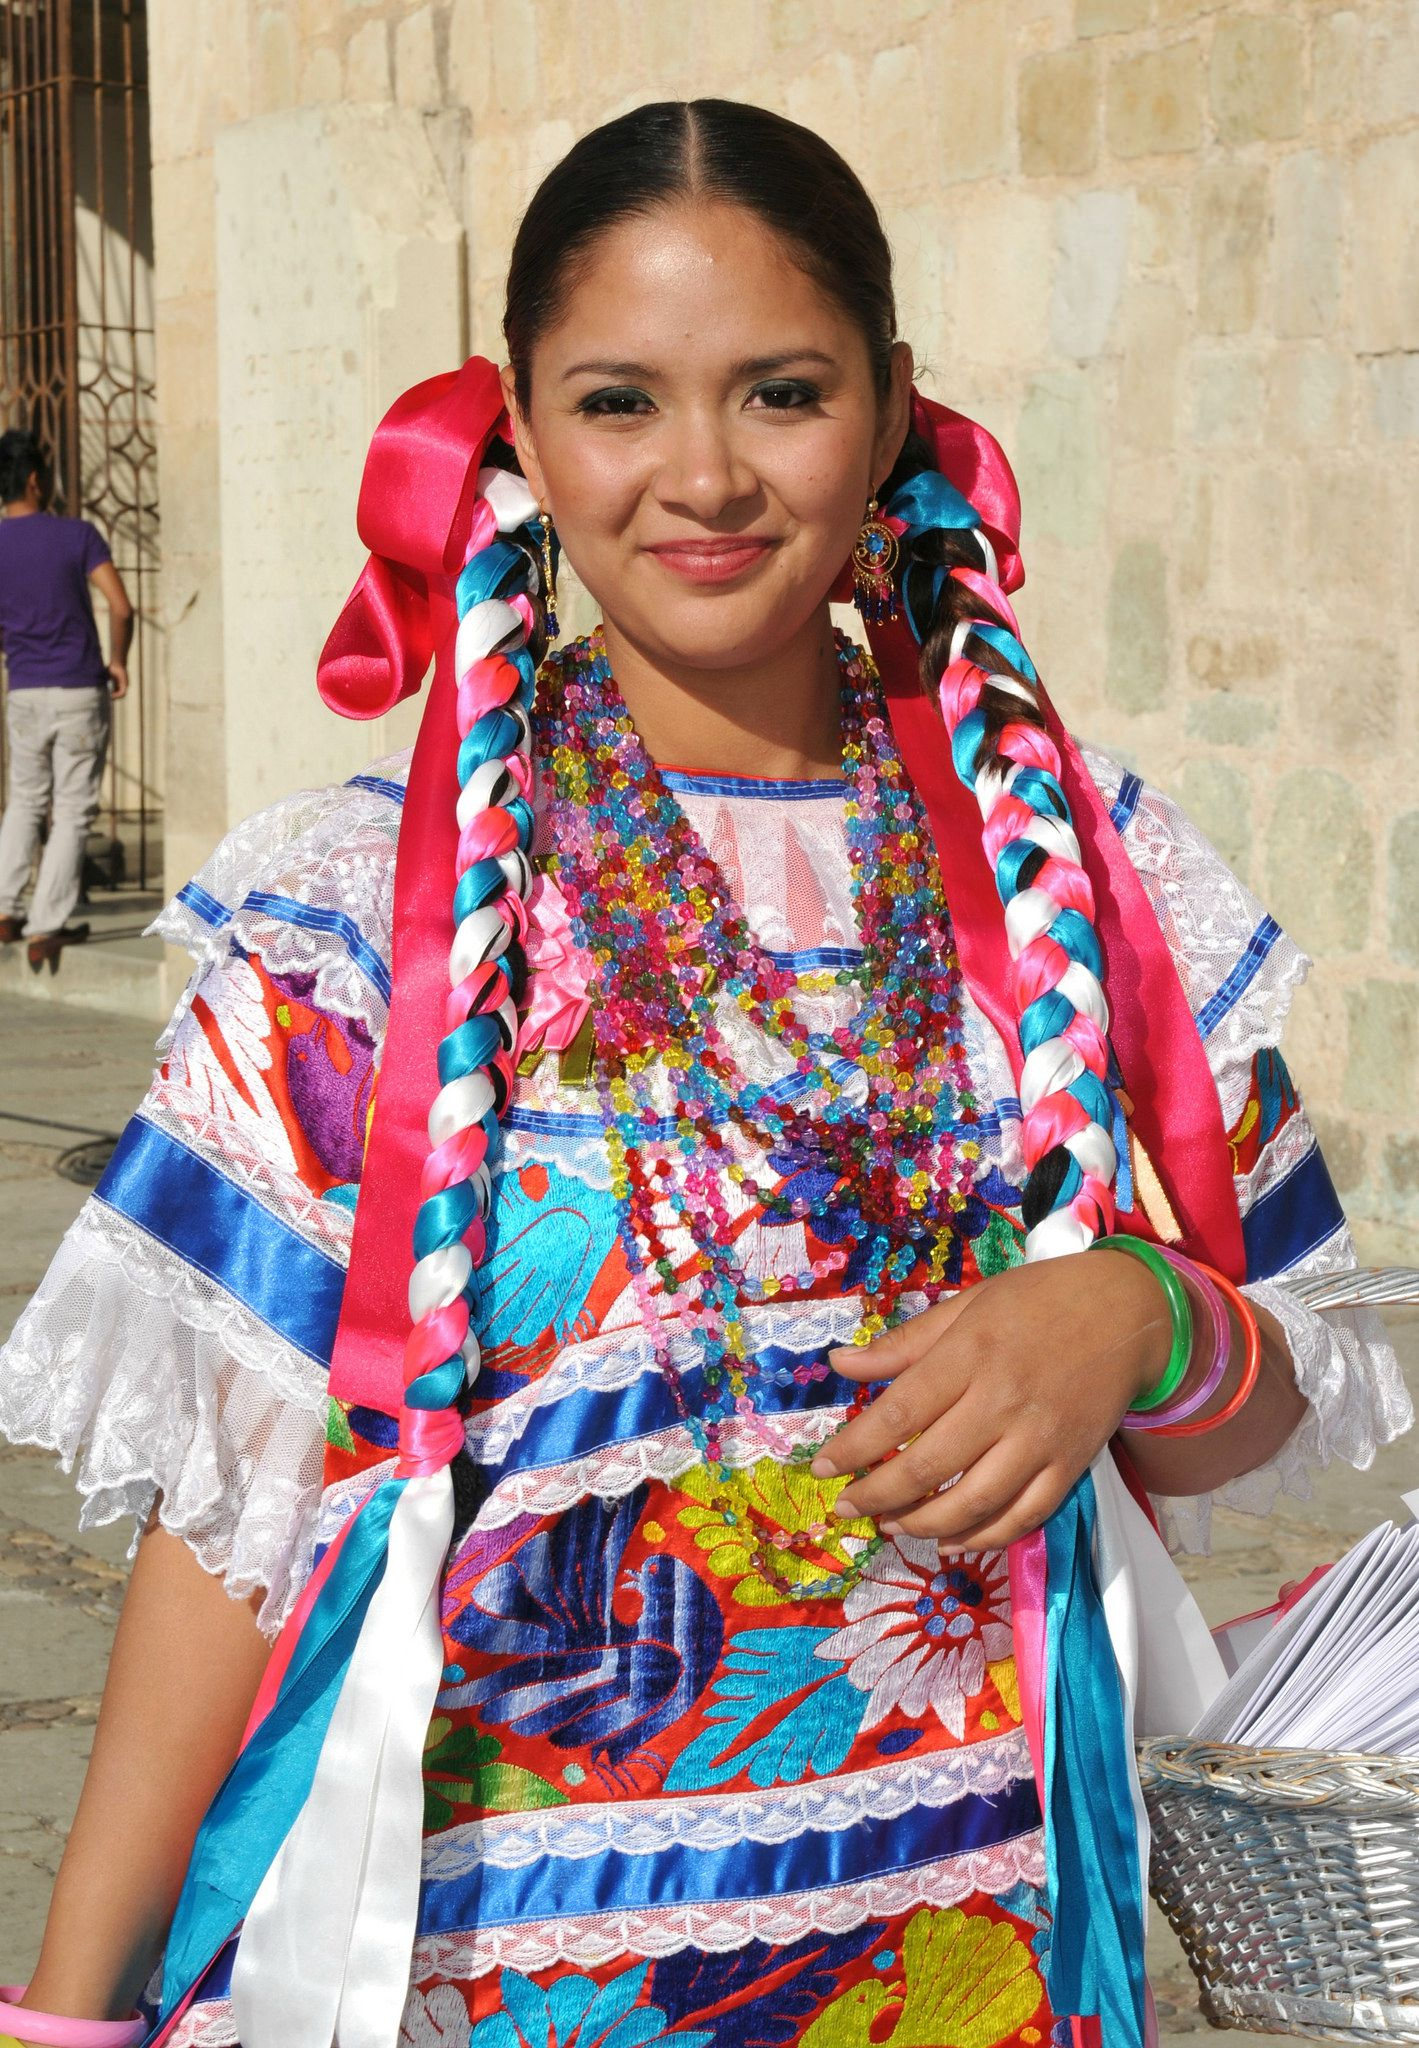 Mujer Woman Oaxaca Mexico Mexicana Mexican Costume Mexican Women Mexican Girl